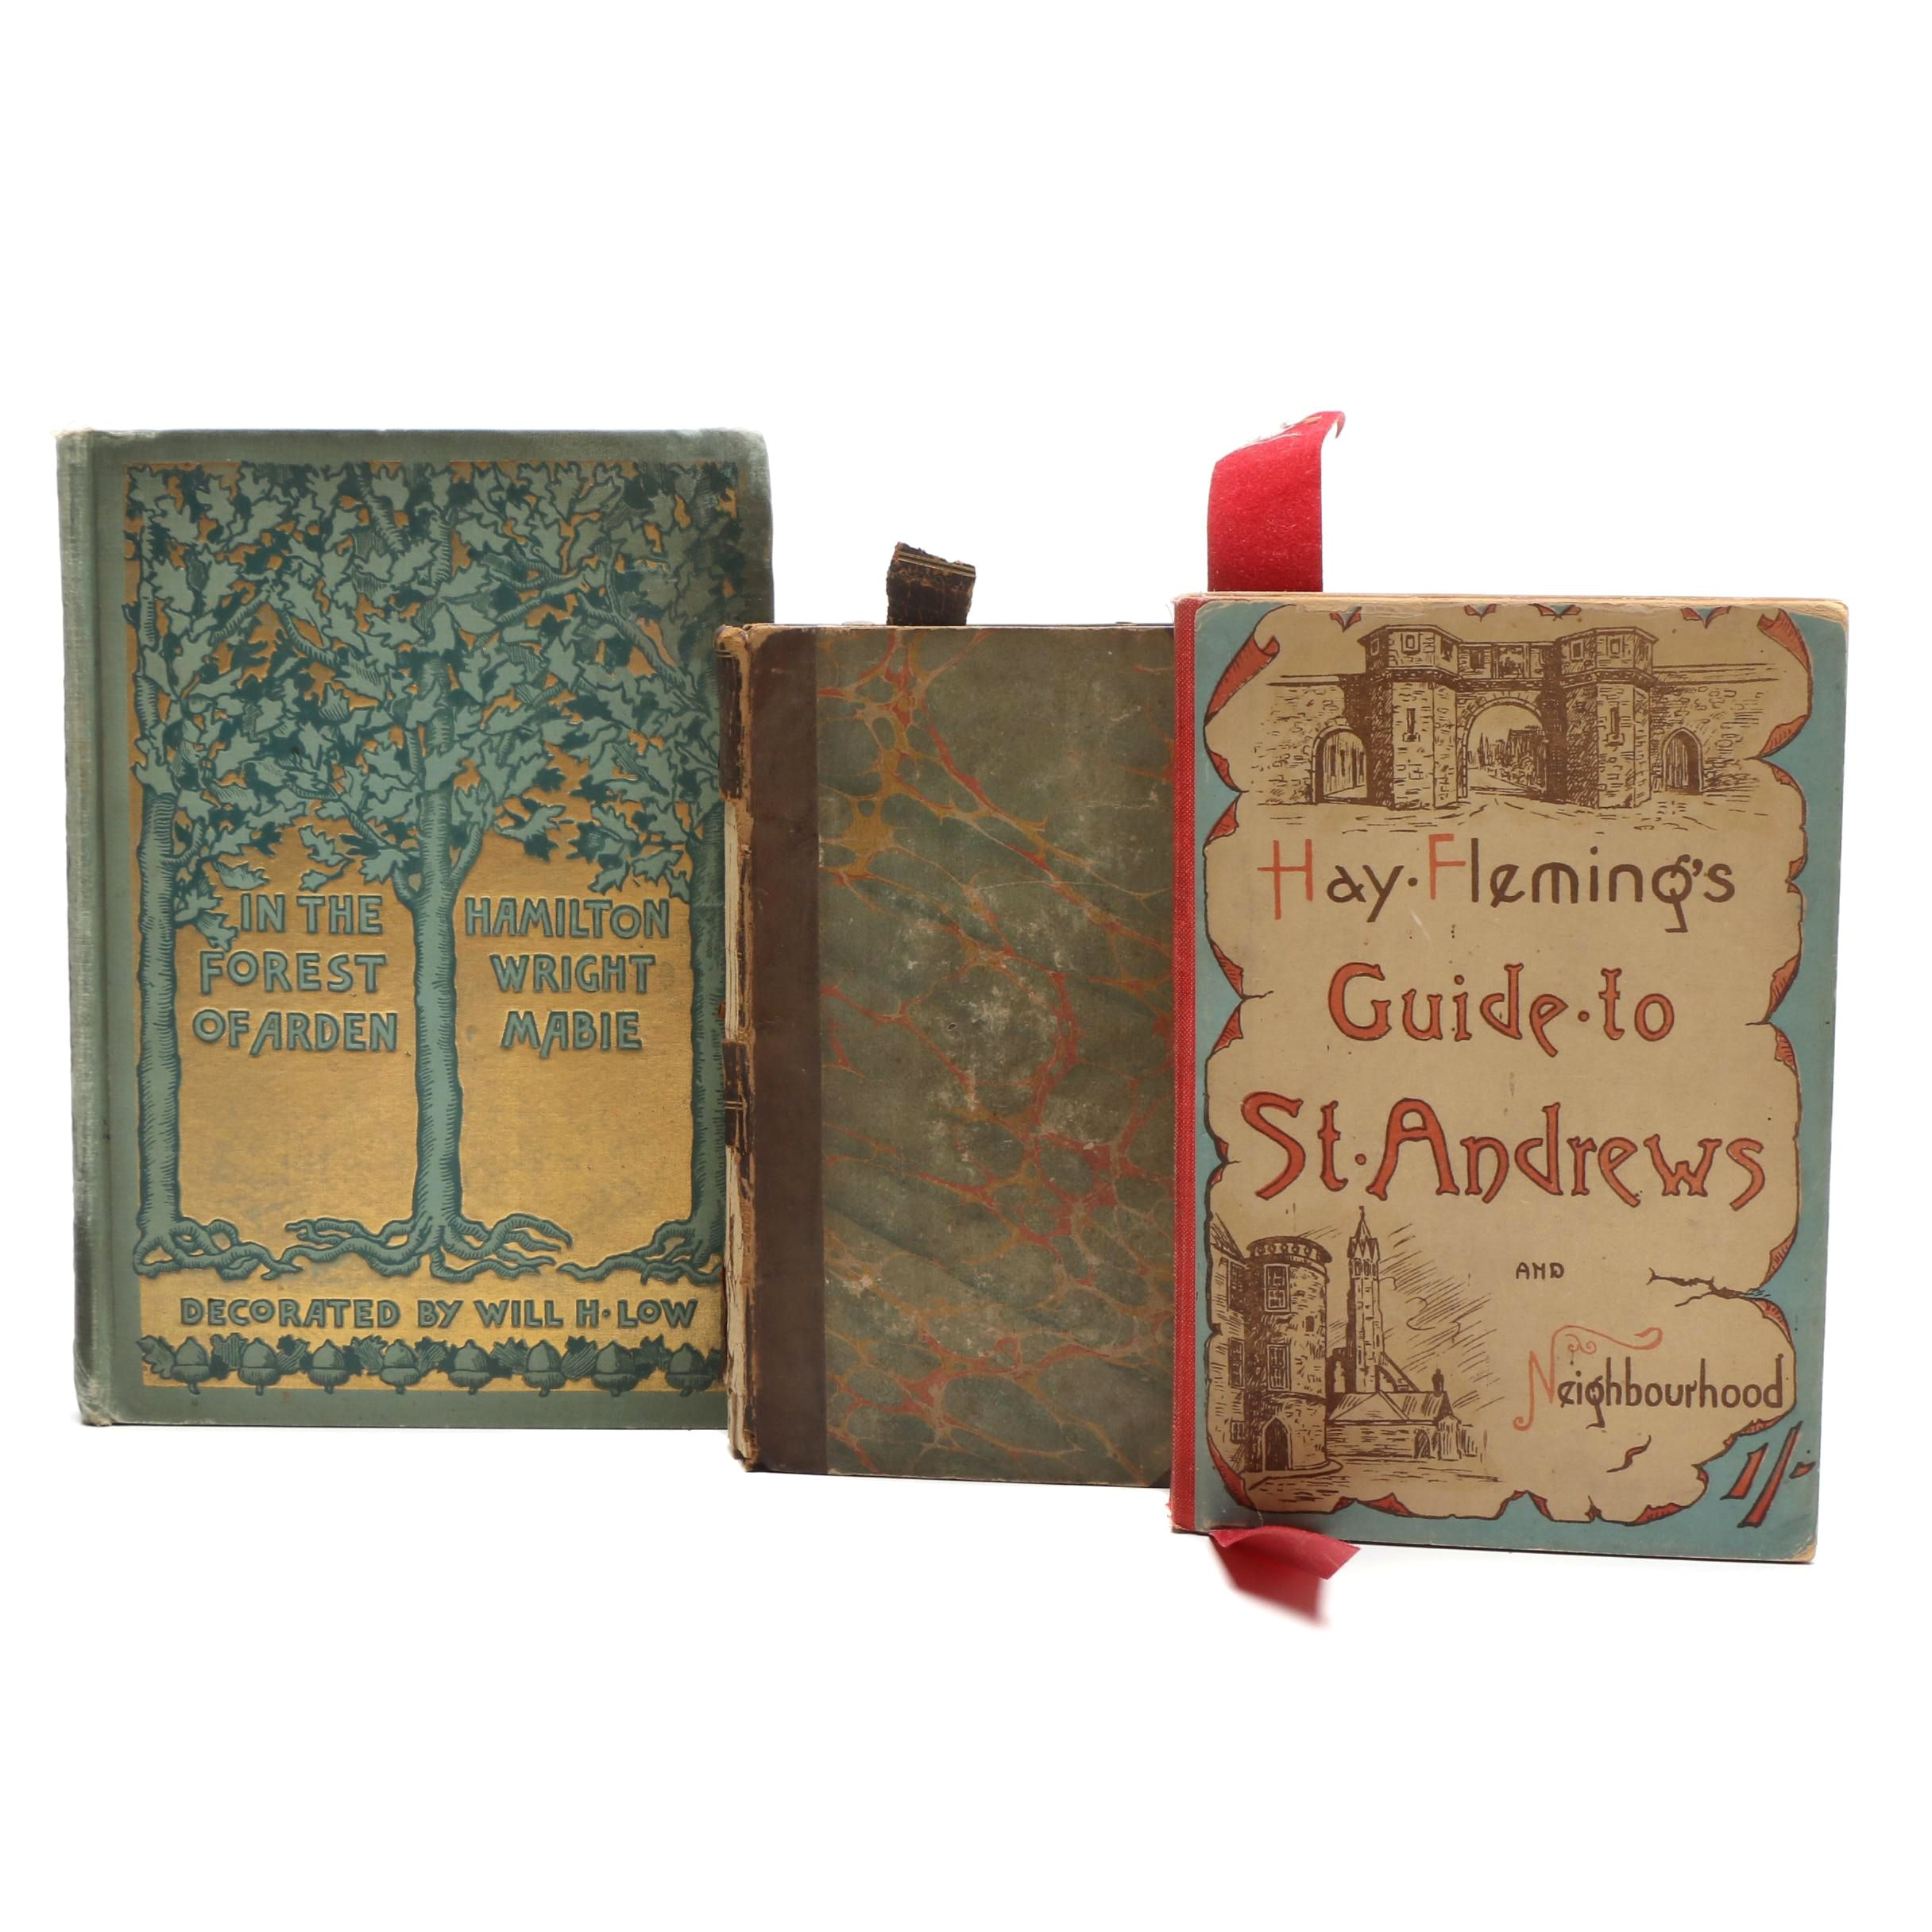 """Antique Books with """"Hay Fleming's Guide to St. Andrews and Neighbourhood"""""""